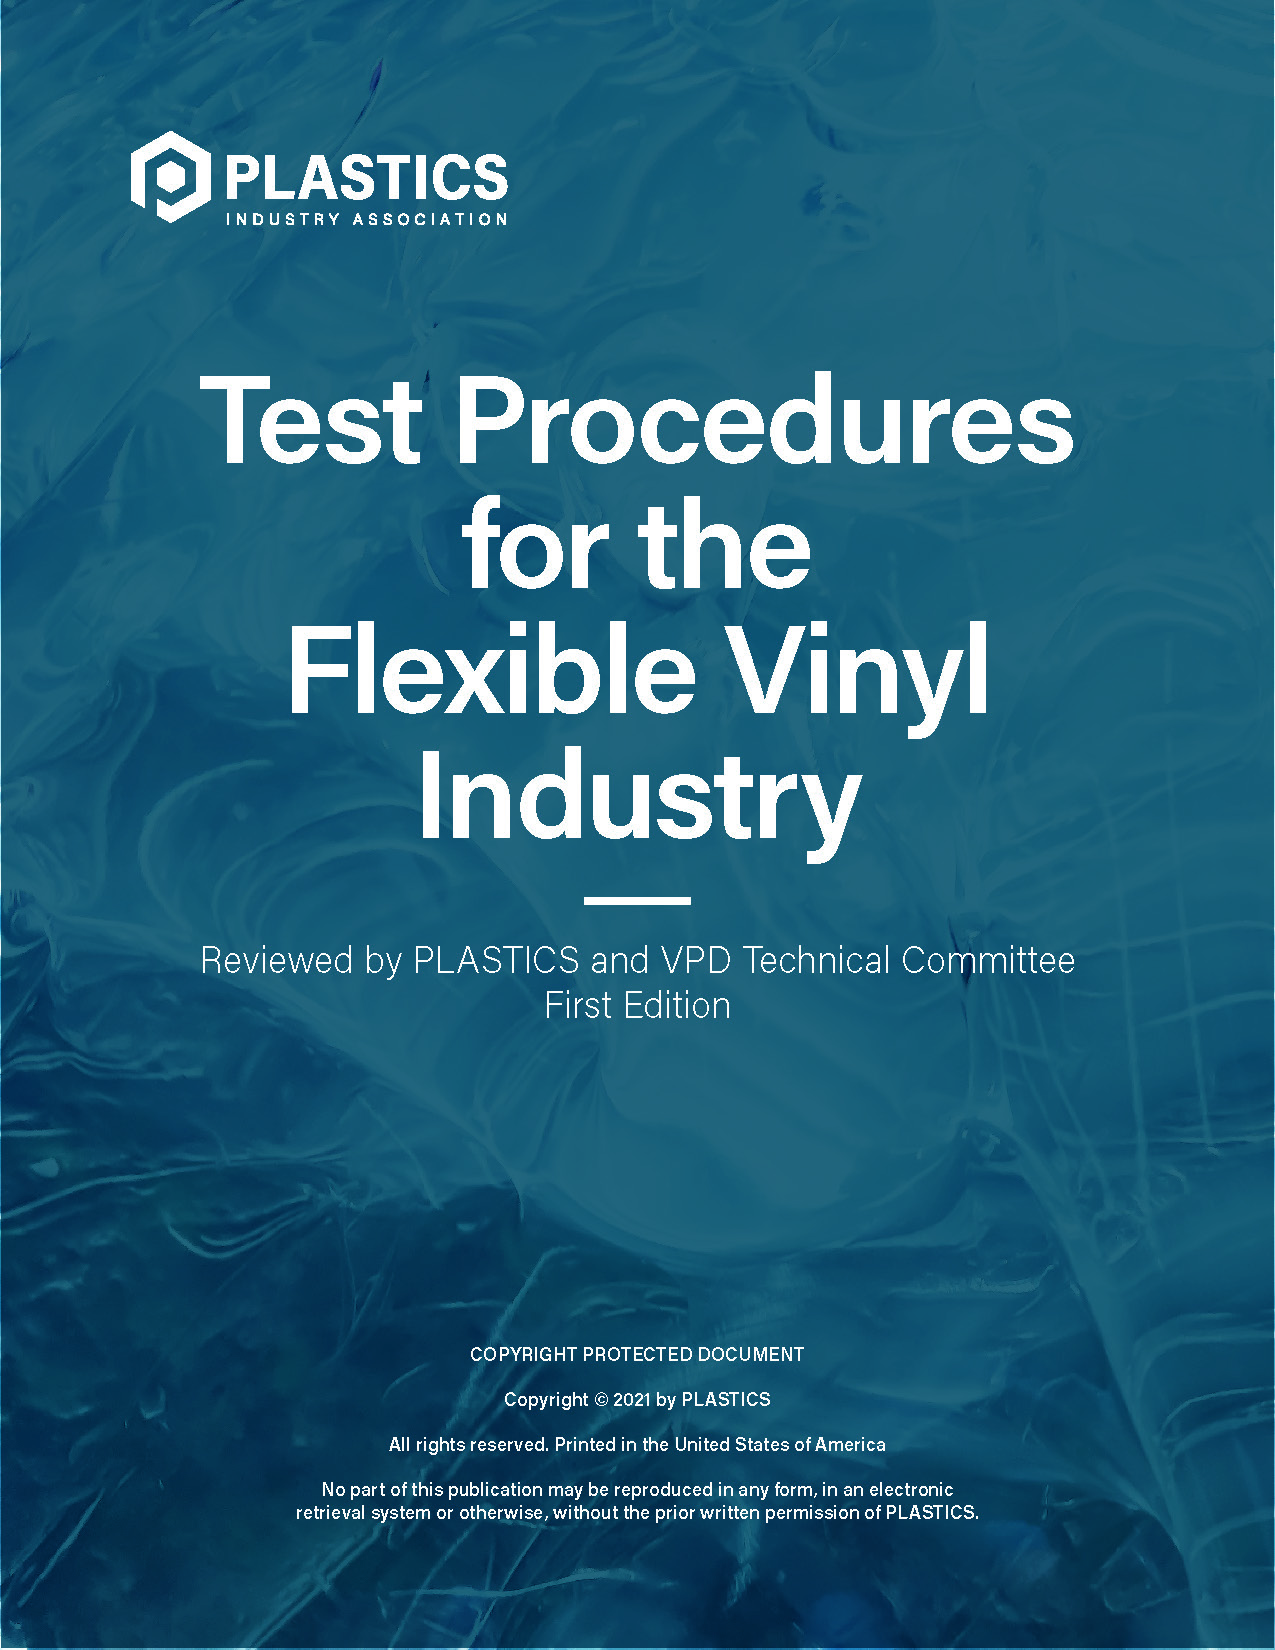 Test Procedures for the Flexible Vinyl Industry